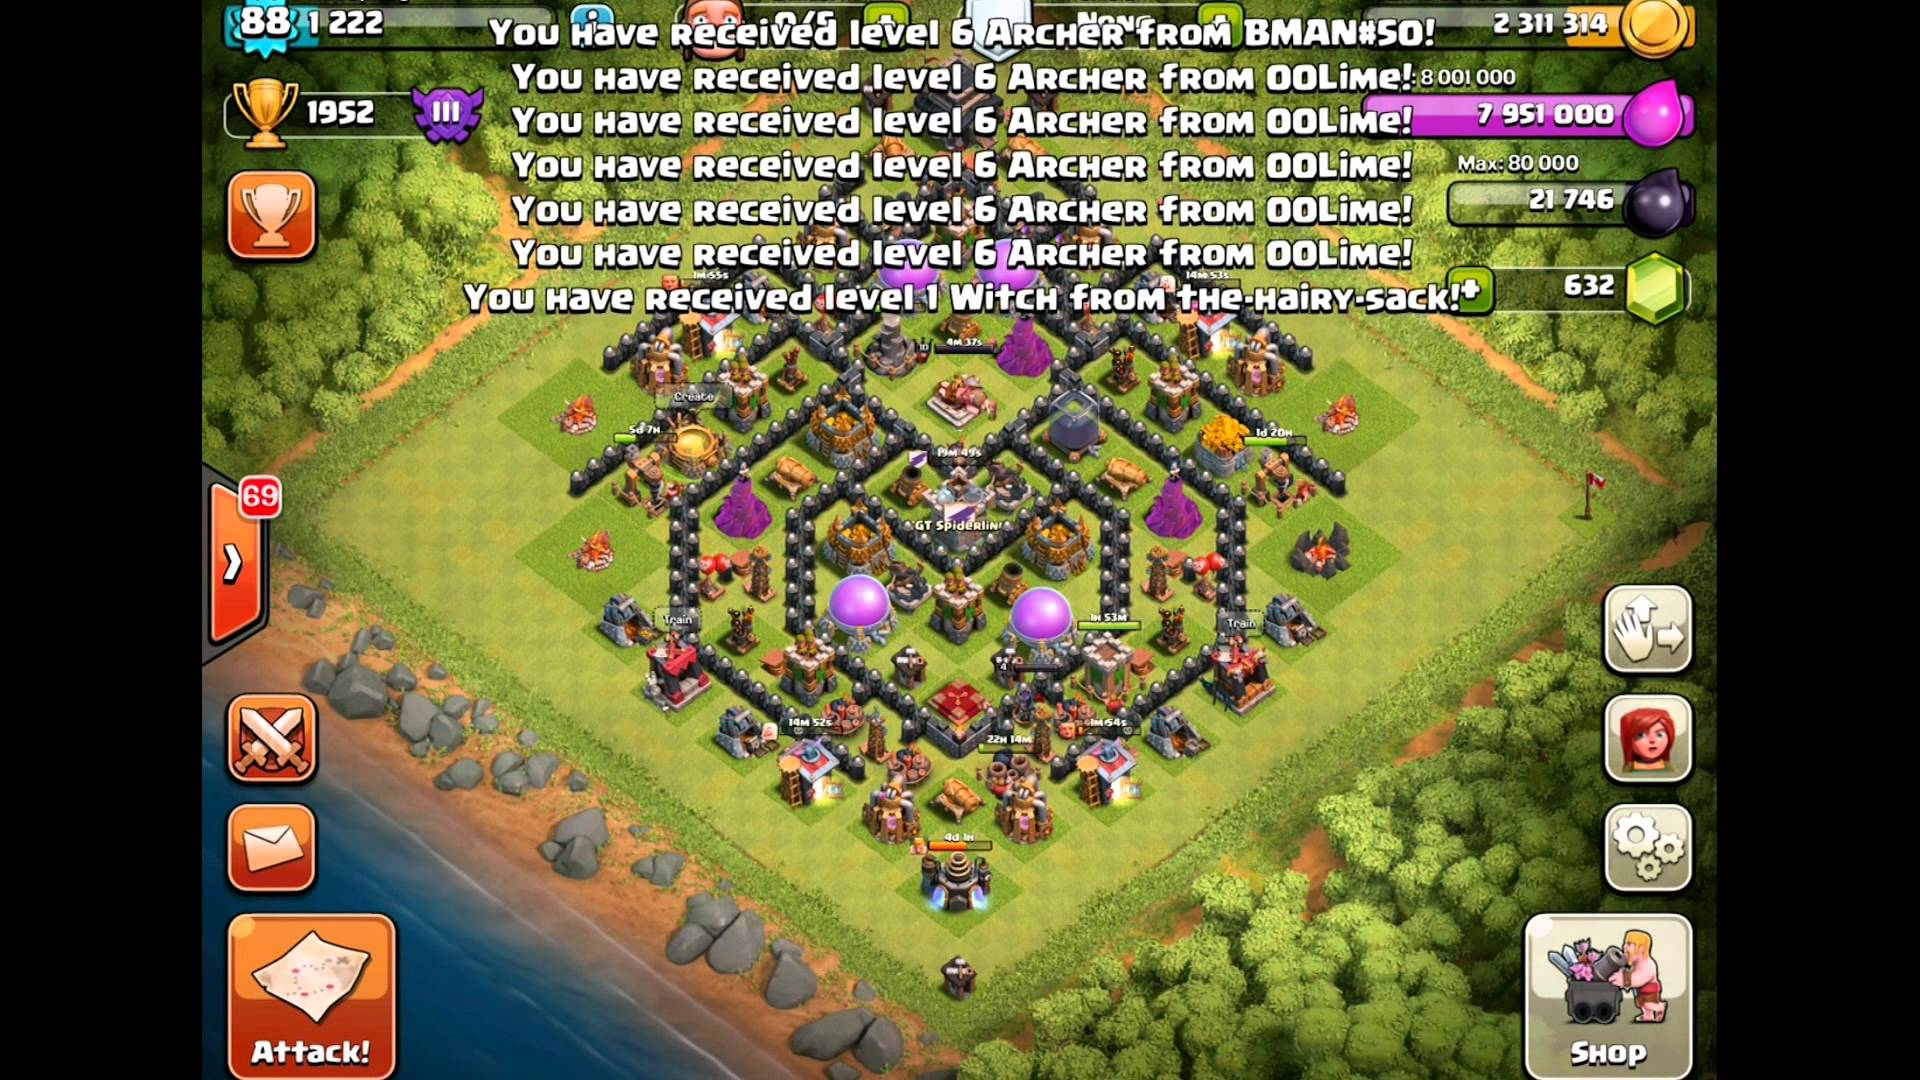 Clash of Clans TH9: Testing Out the Giant/Healer Raid Strategy with Some Balloons for Good Measure